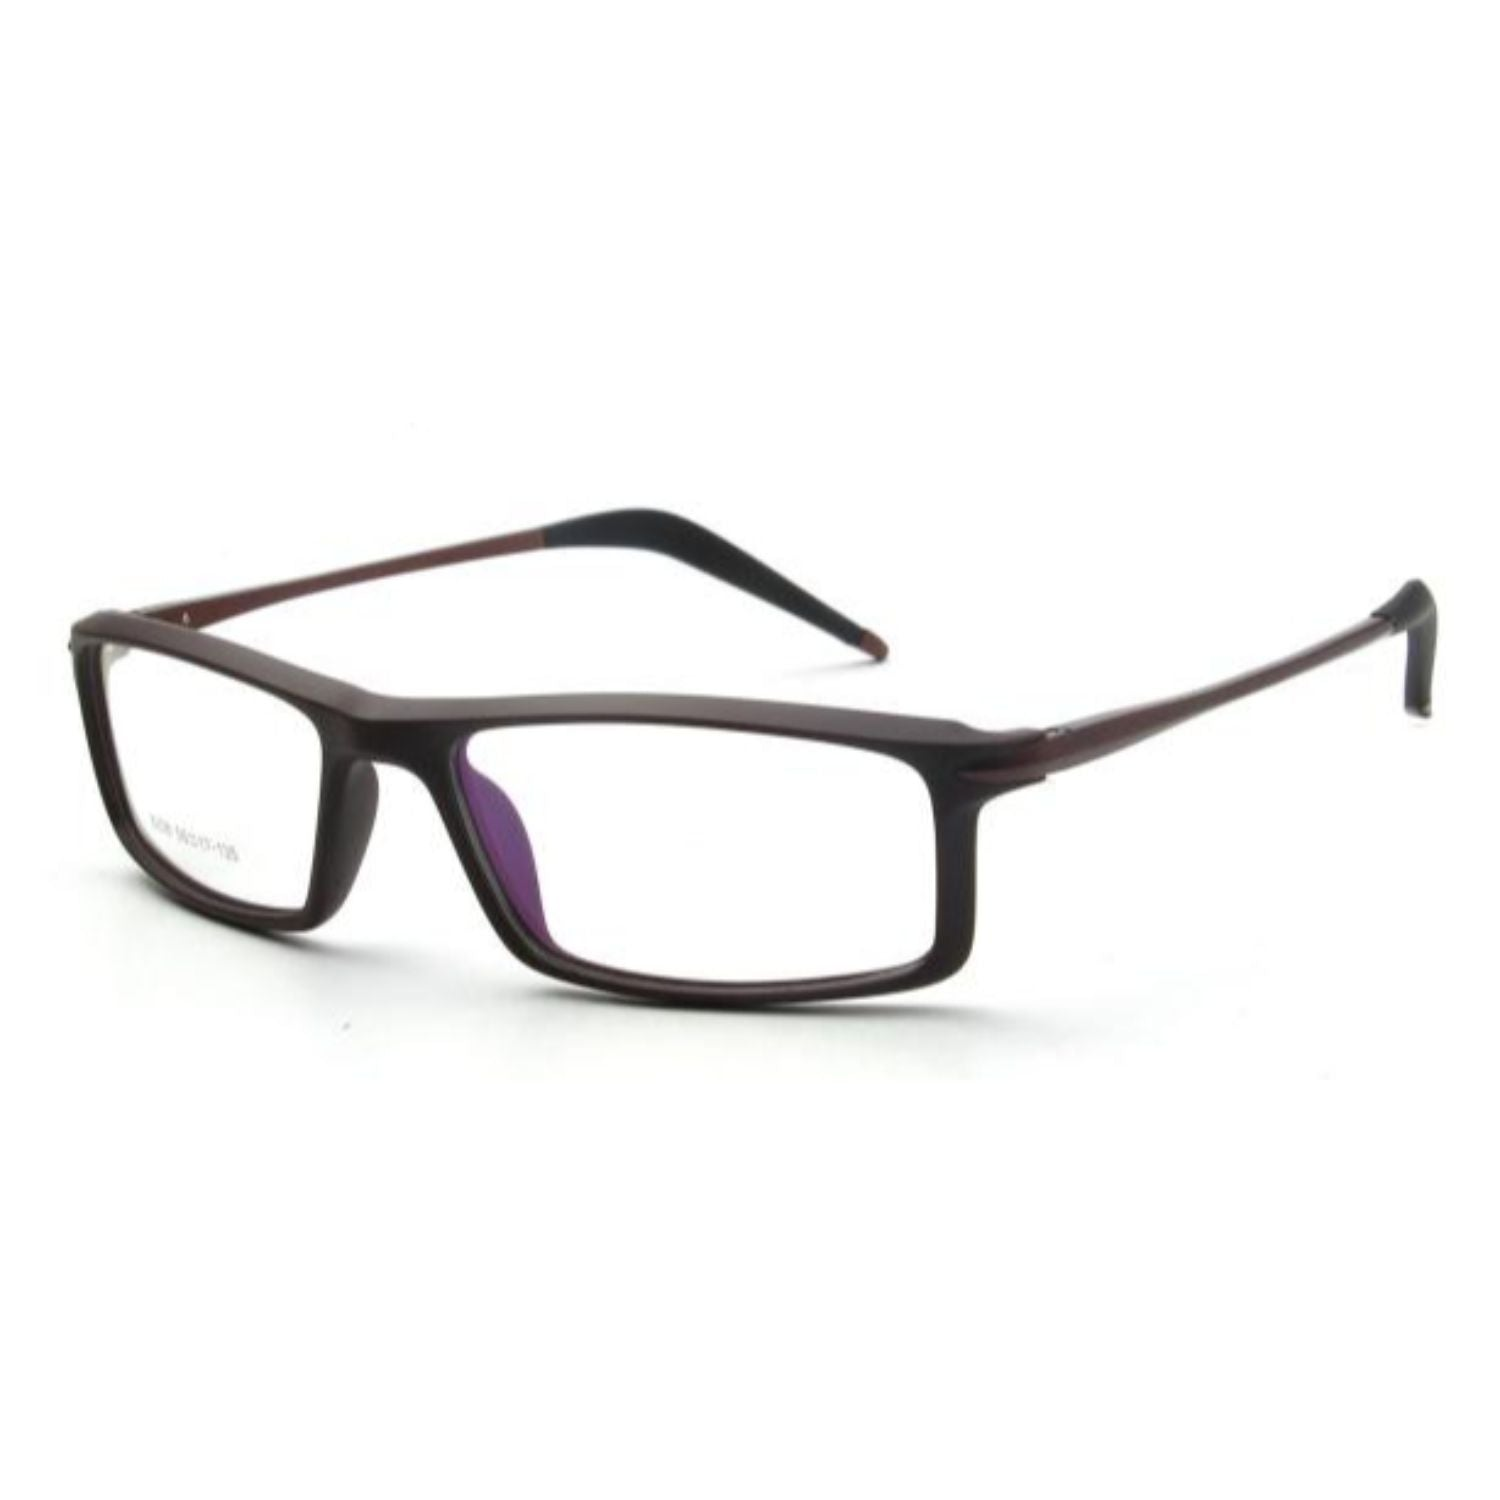 OTR5 - Classic Rectangle Sport Optical Glasses